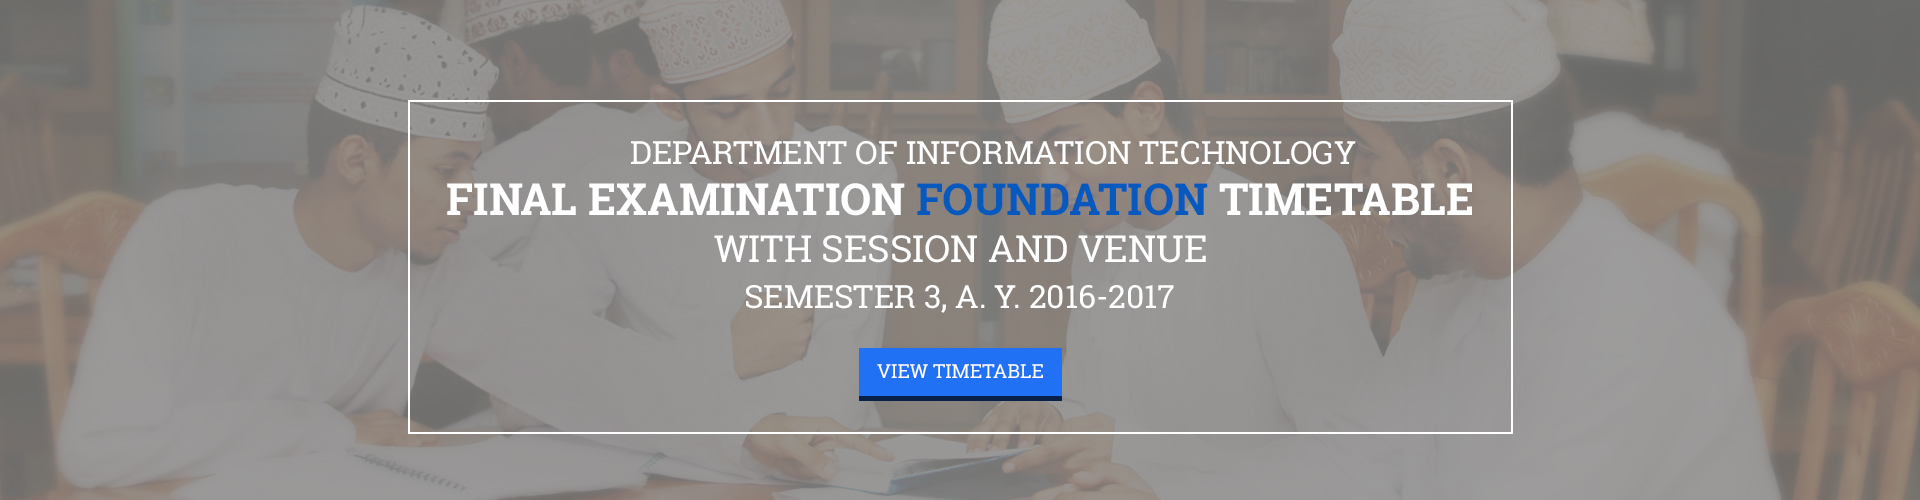 Final Examination FOUNDATION Timetable with Session and Venue (IT)  Semester 3, A. Y. 2016-2017